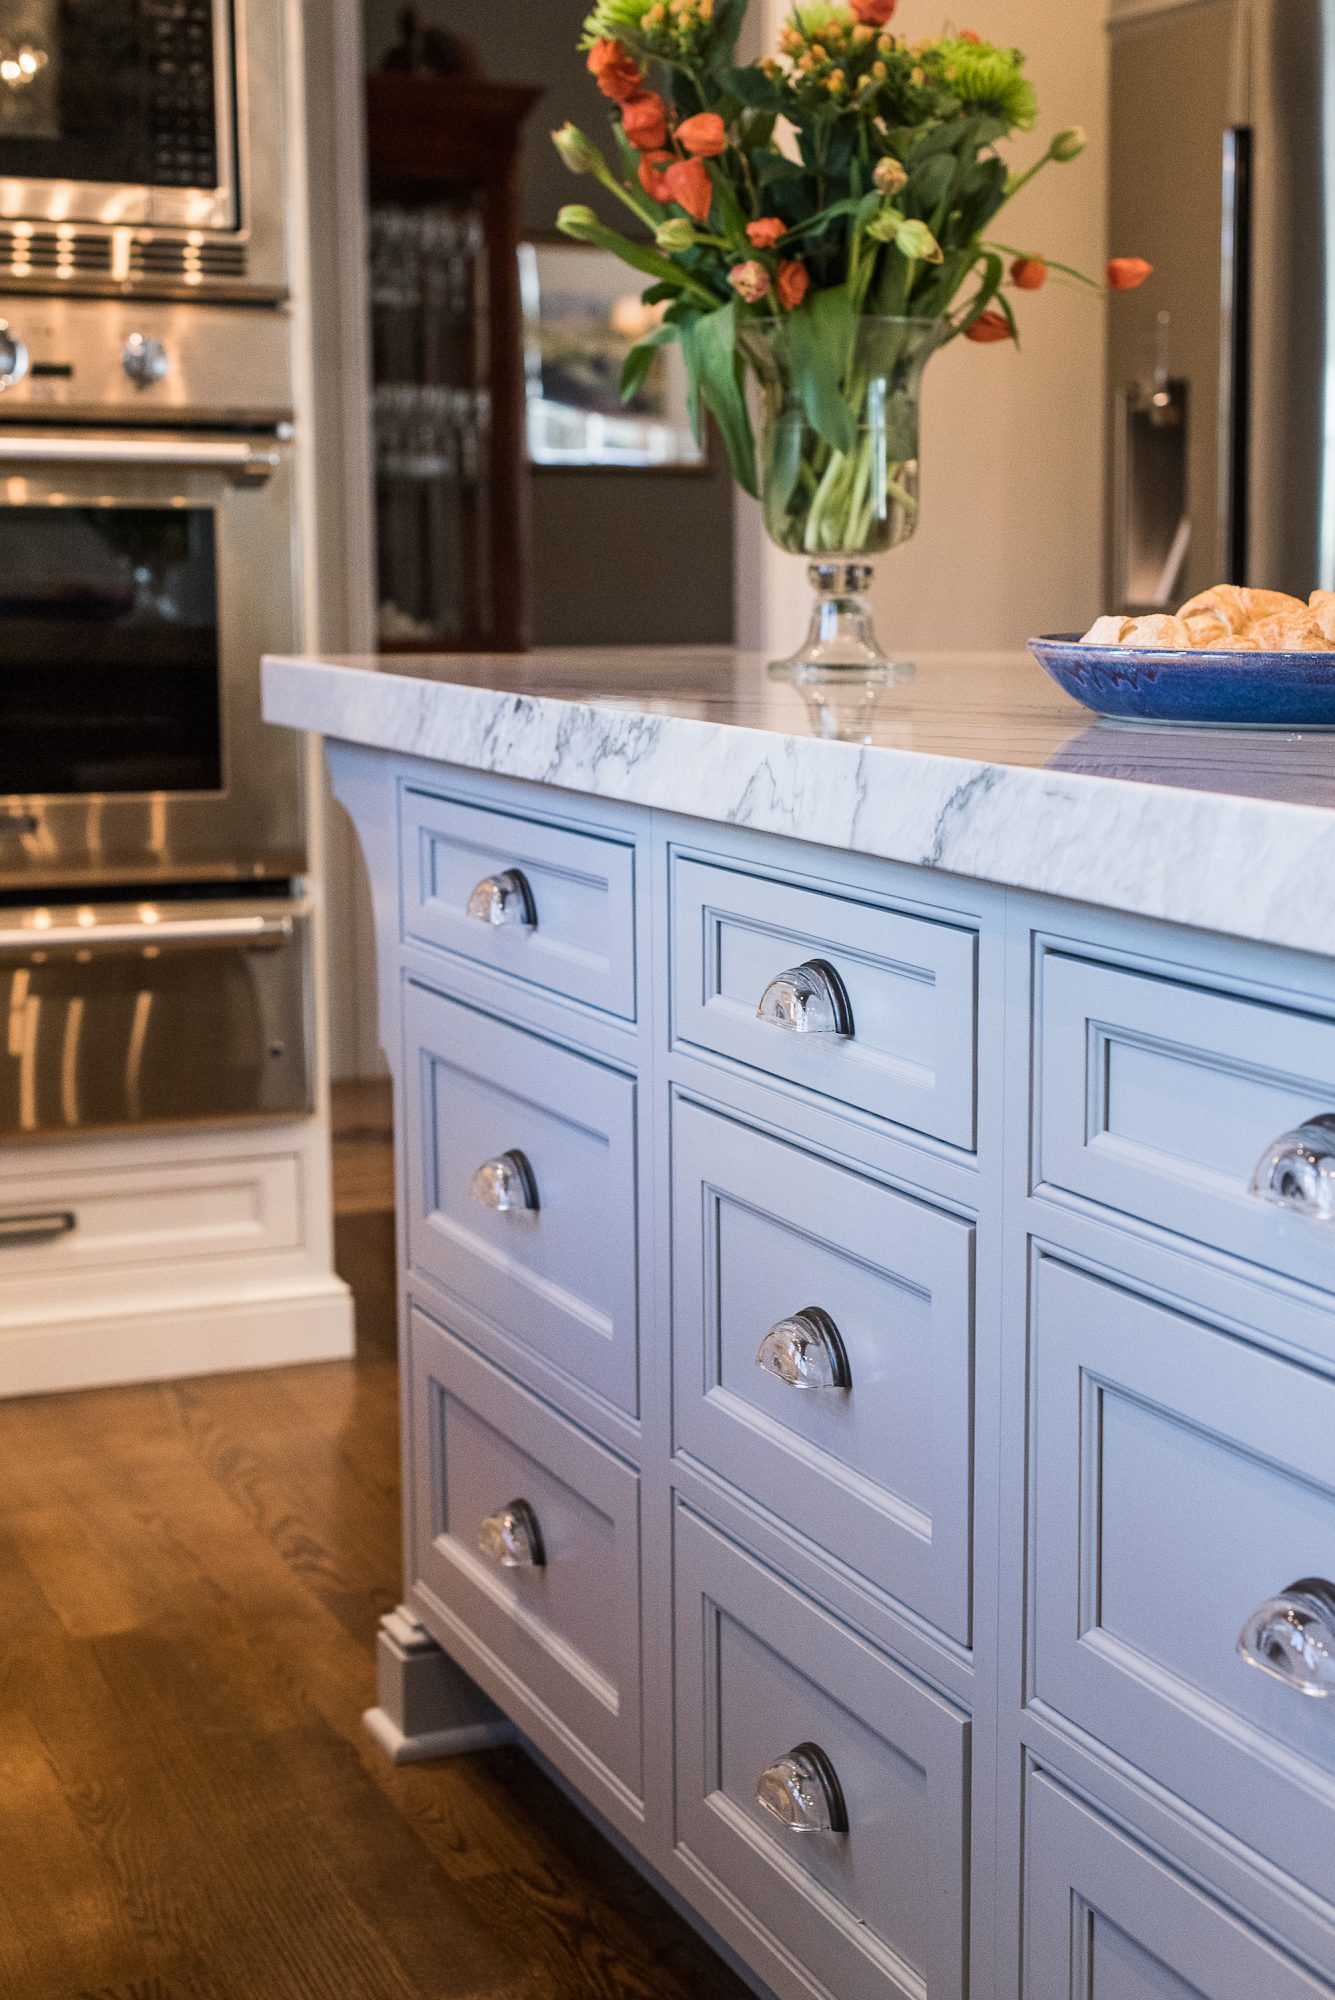 Inset Traditional Kitchen Cabinet Style, light blue cabinet